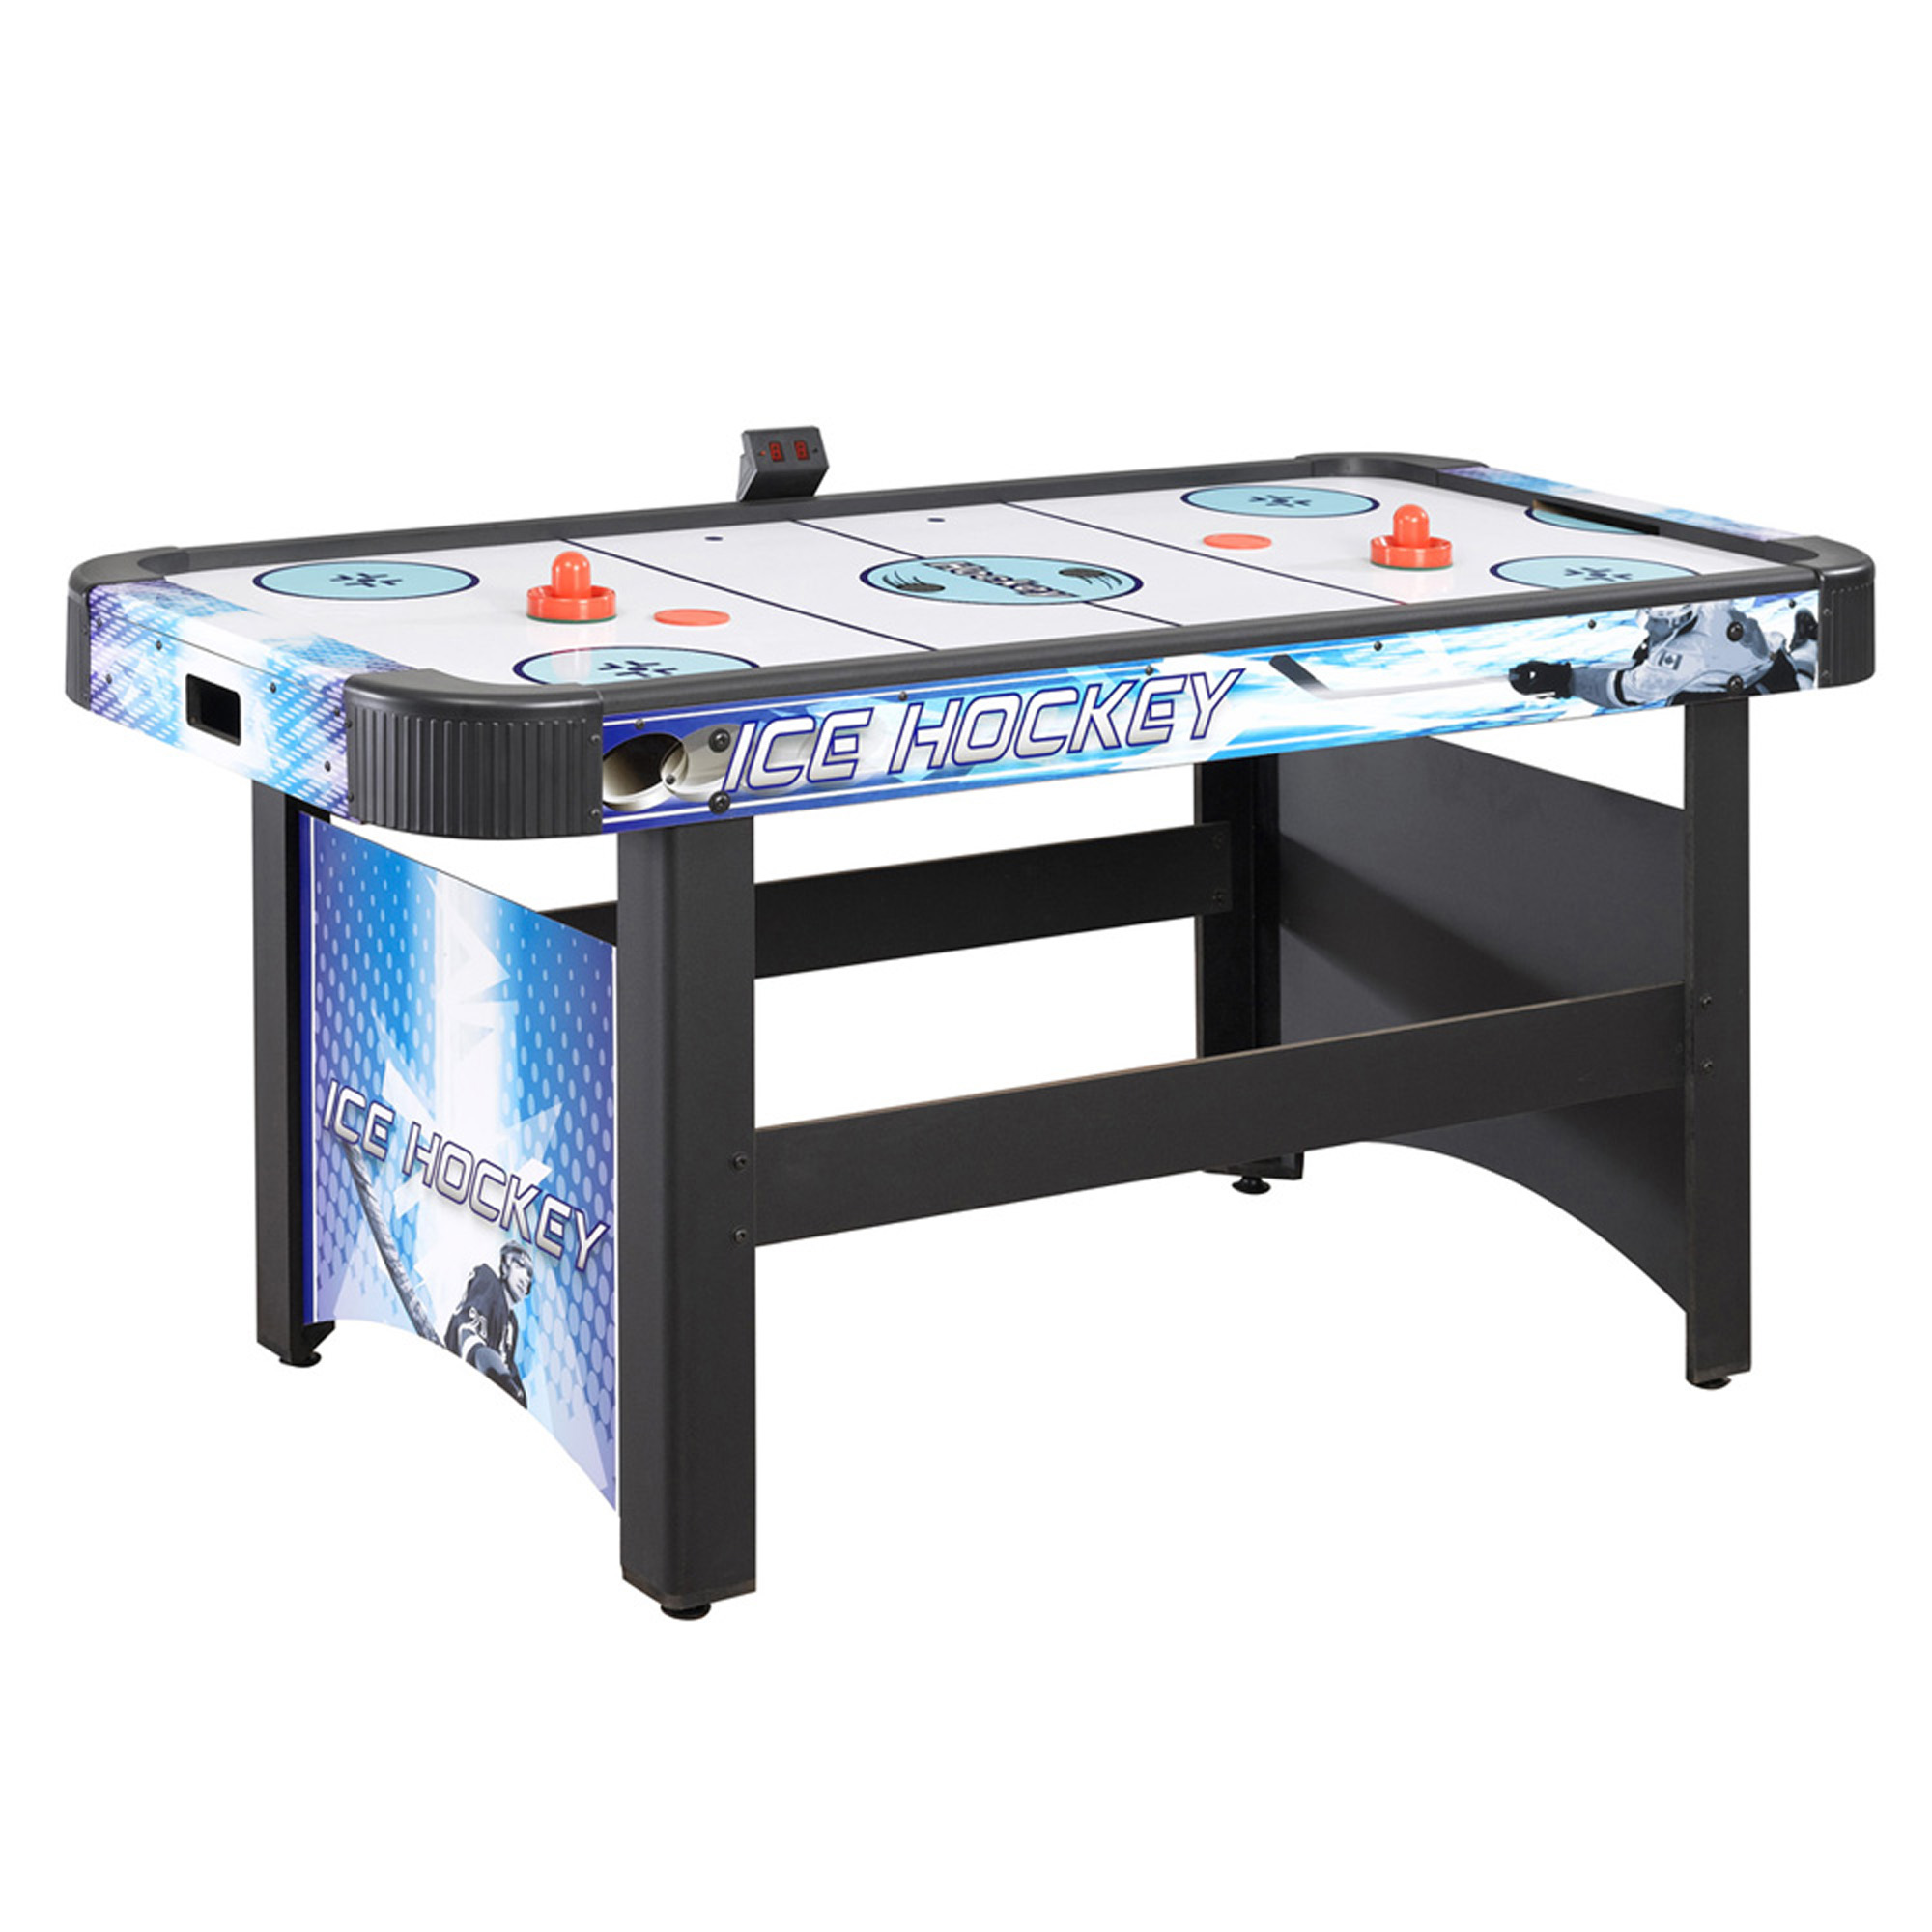 Hathaway Face-Off 5-Foot Air Hockey Game Table for Family Game Rooms with Electronic Scoring, Free Pucks & Strikers by Blue Wave